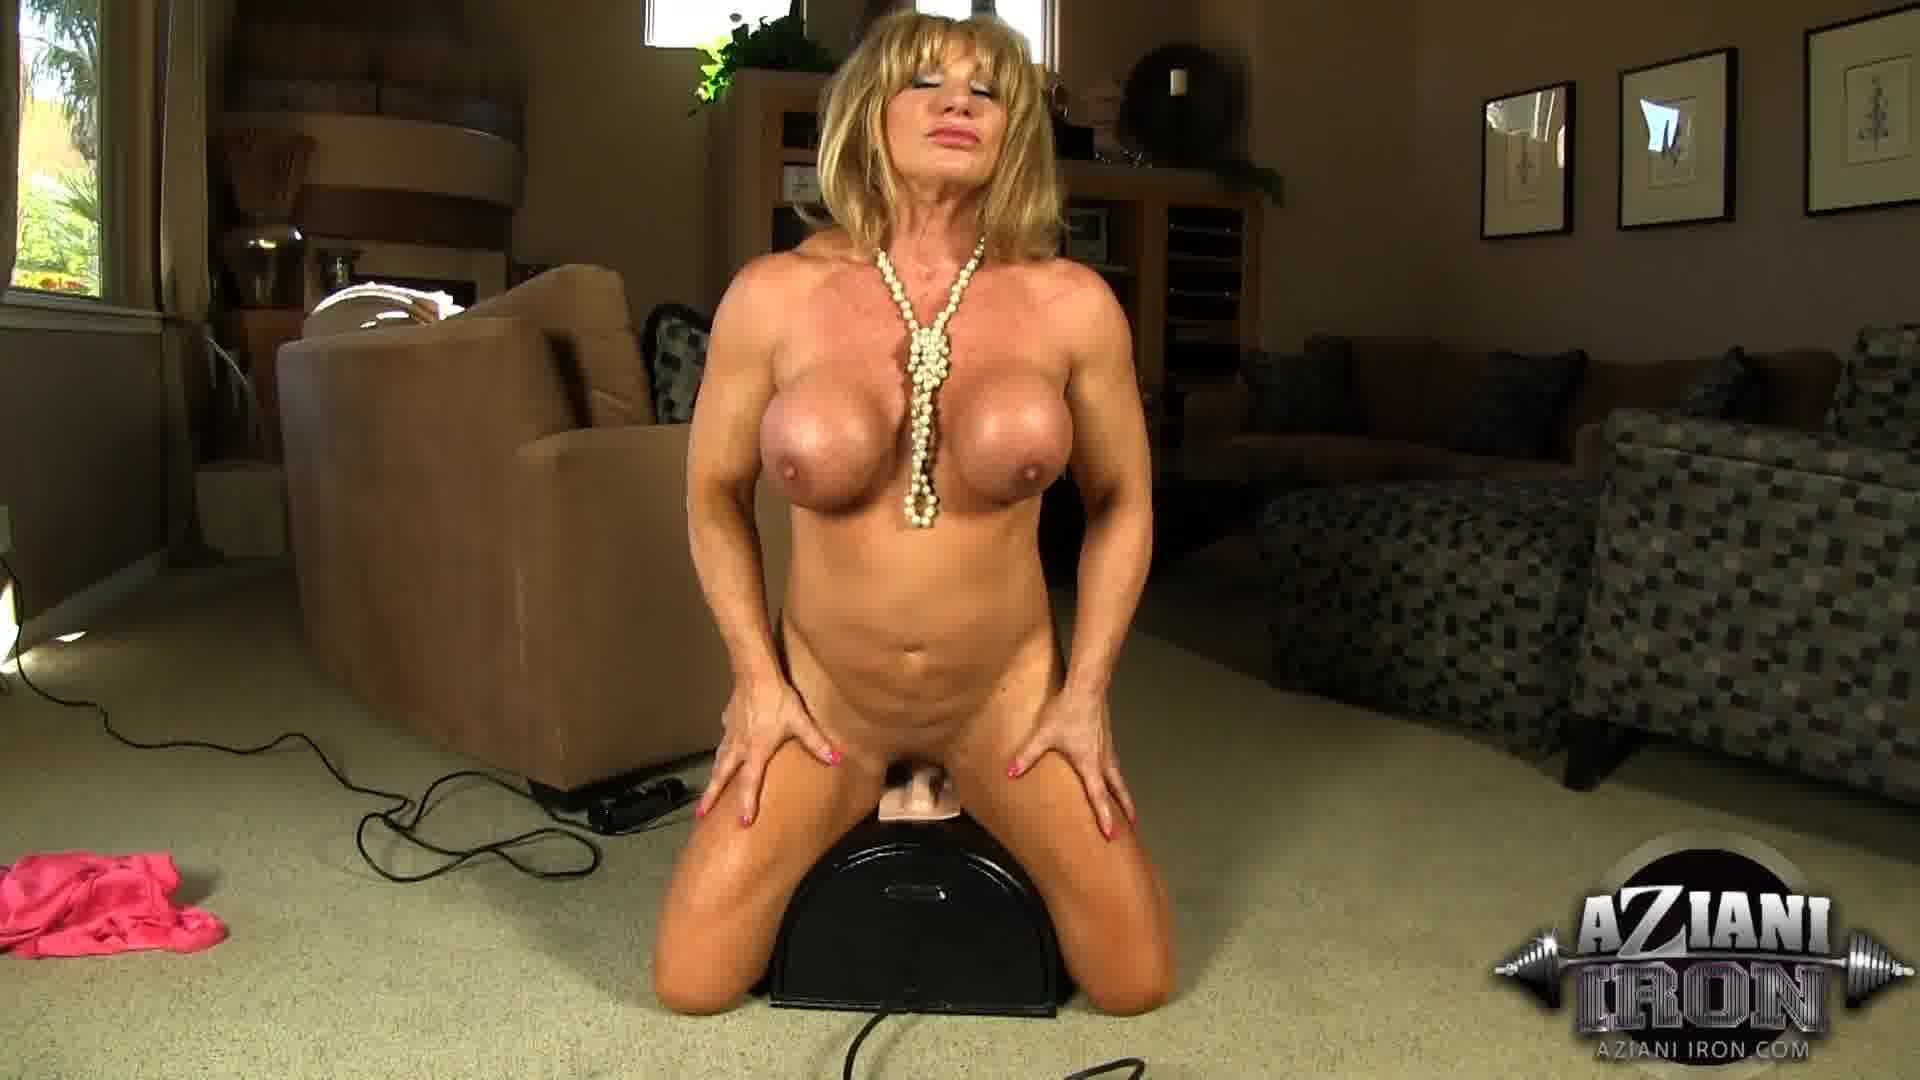 sexy clit show ... but also shows us her pretty pussy and big clit. She jumps on the  Sybian and goes for a ride until she cums all over the sex  machine.-AzianiIron.com